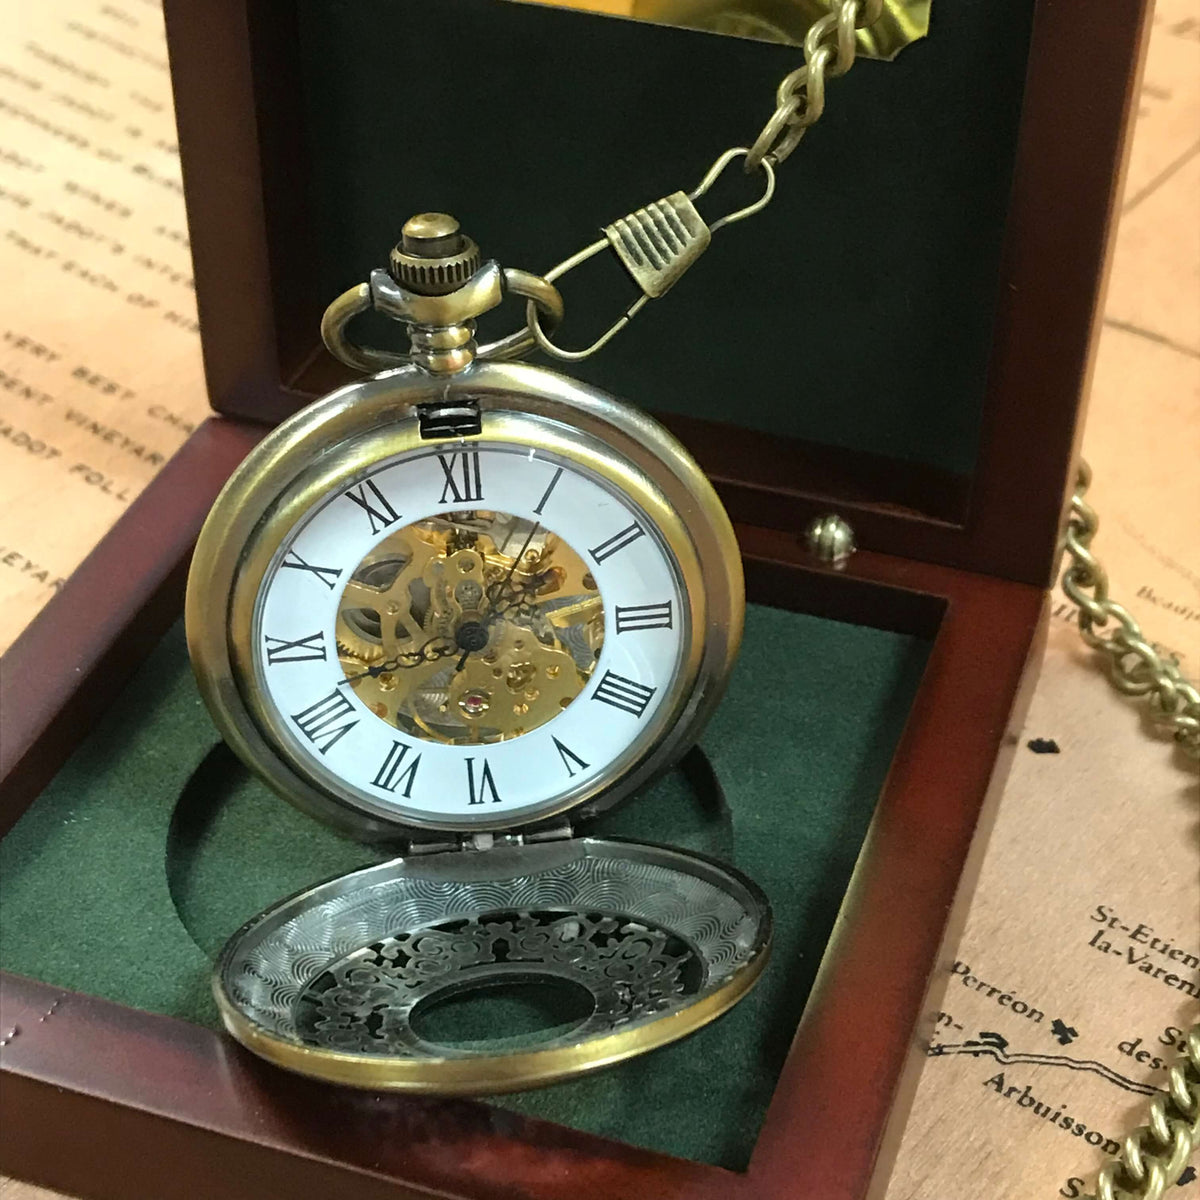 The Windsor Brass Antique Steampunk Pocket Watch Currently Out Of Pocket Watch Company